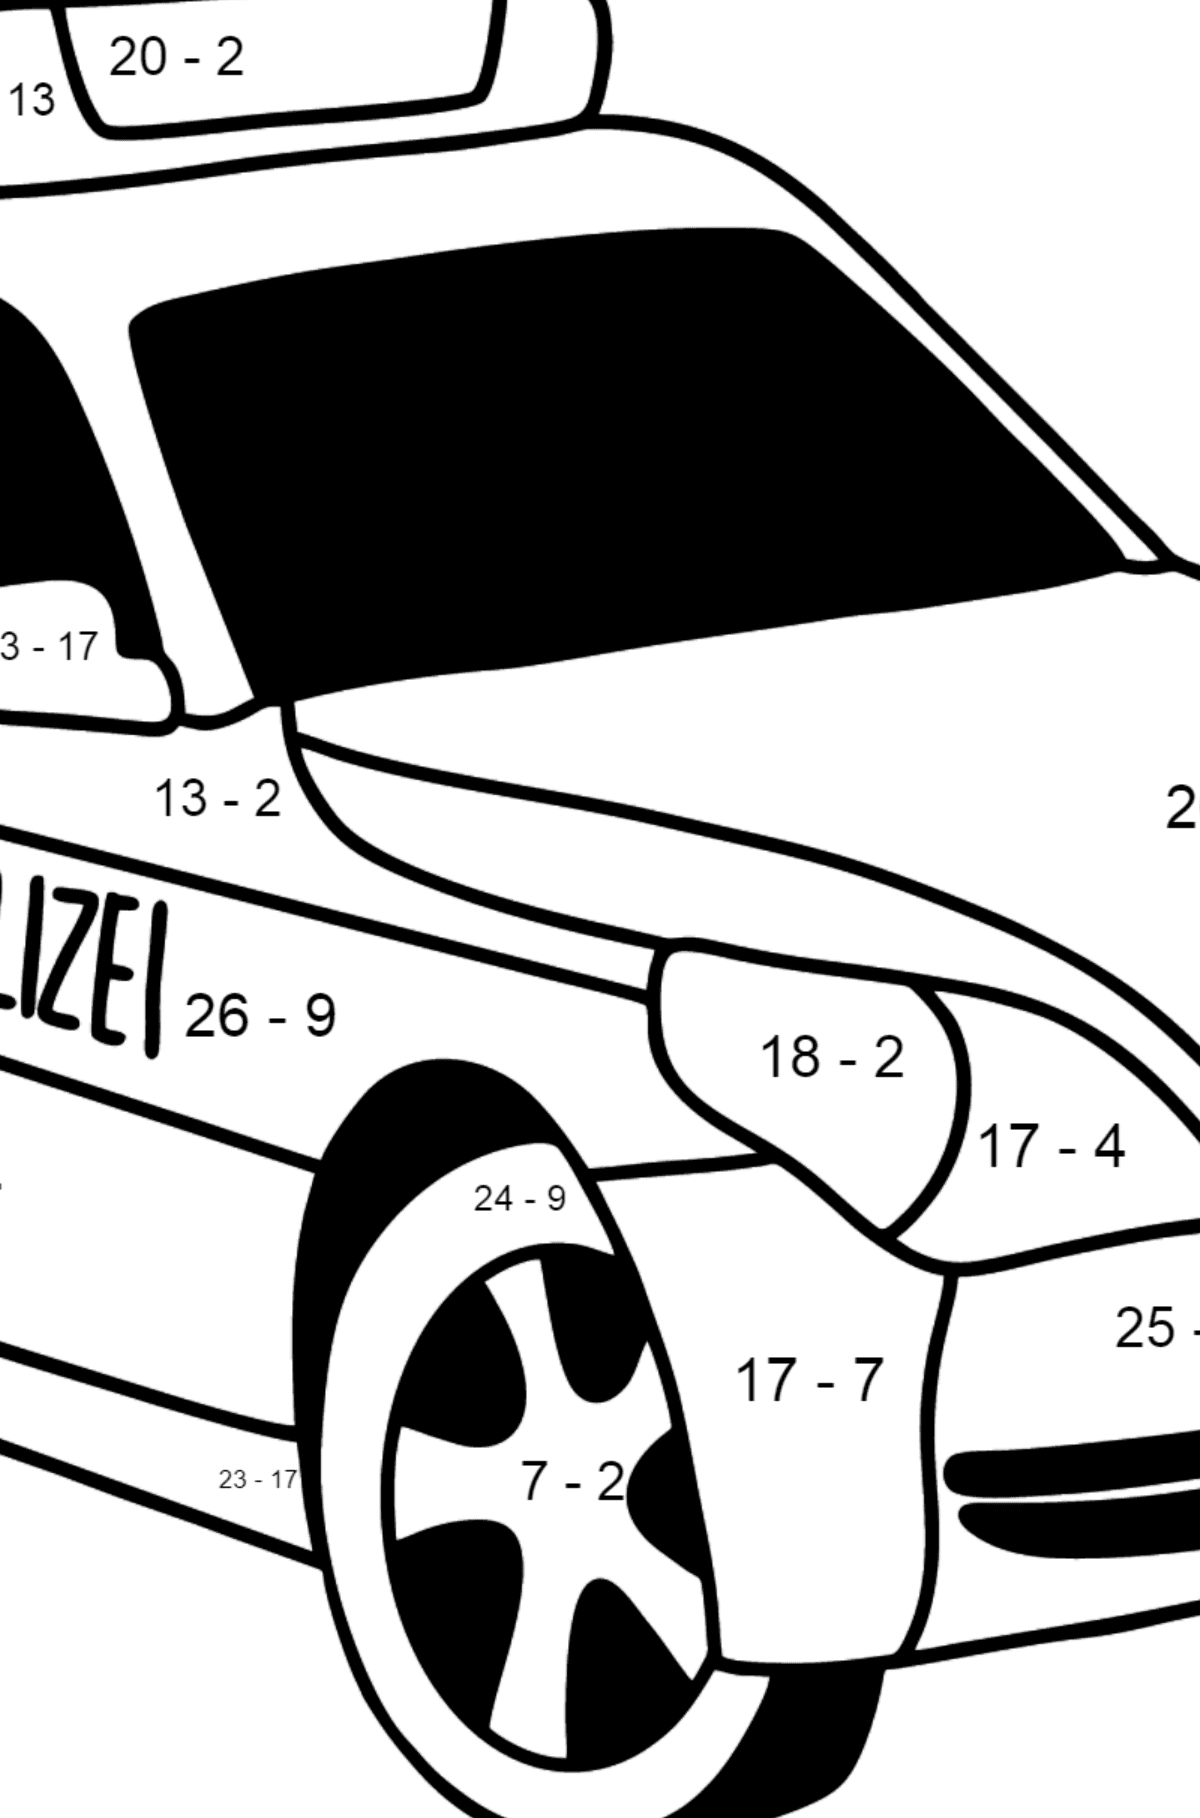 Police Car in Germany coloring page - Math Coloring - Subtraction for Kids